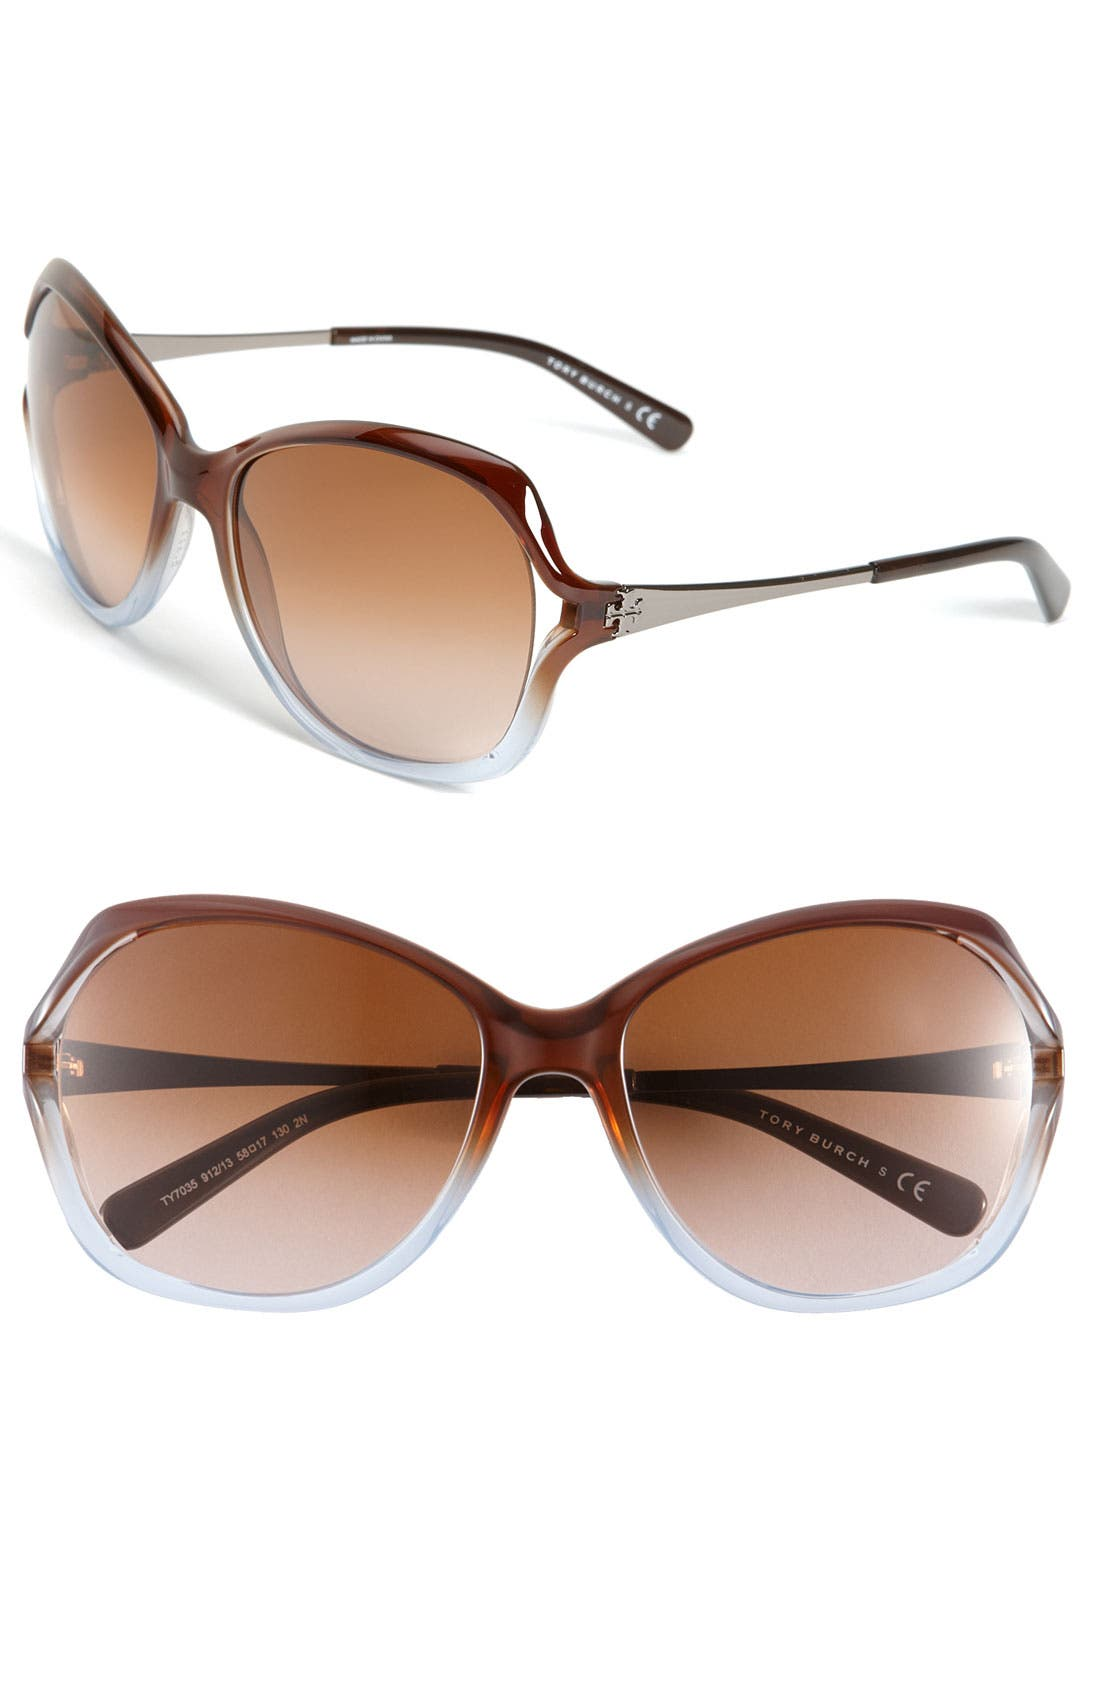 Alternate Image 1 Selected - Tory Burch 59mm Open Lens Butterfly Sunglasses (Online Only)